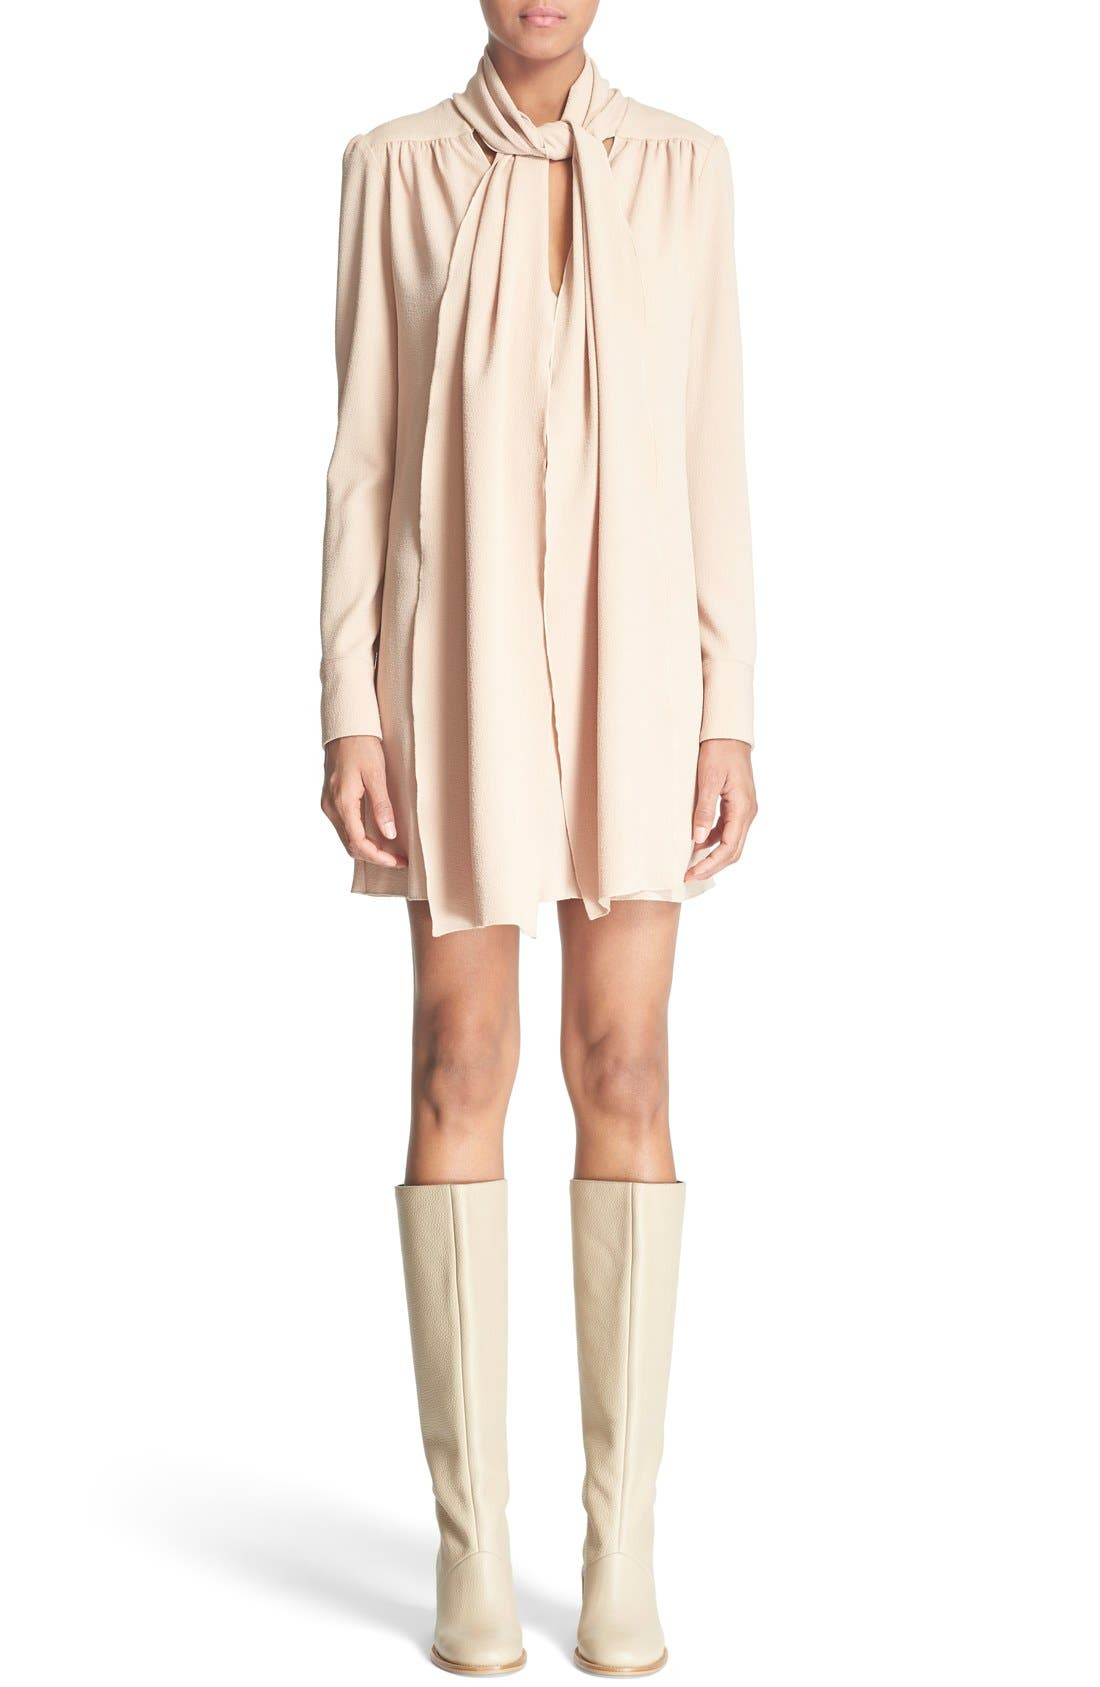 Alternate Image 1 Selected - See by Chloé Tie Neck Crepe Dress